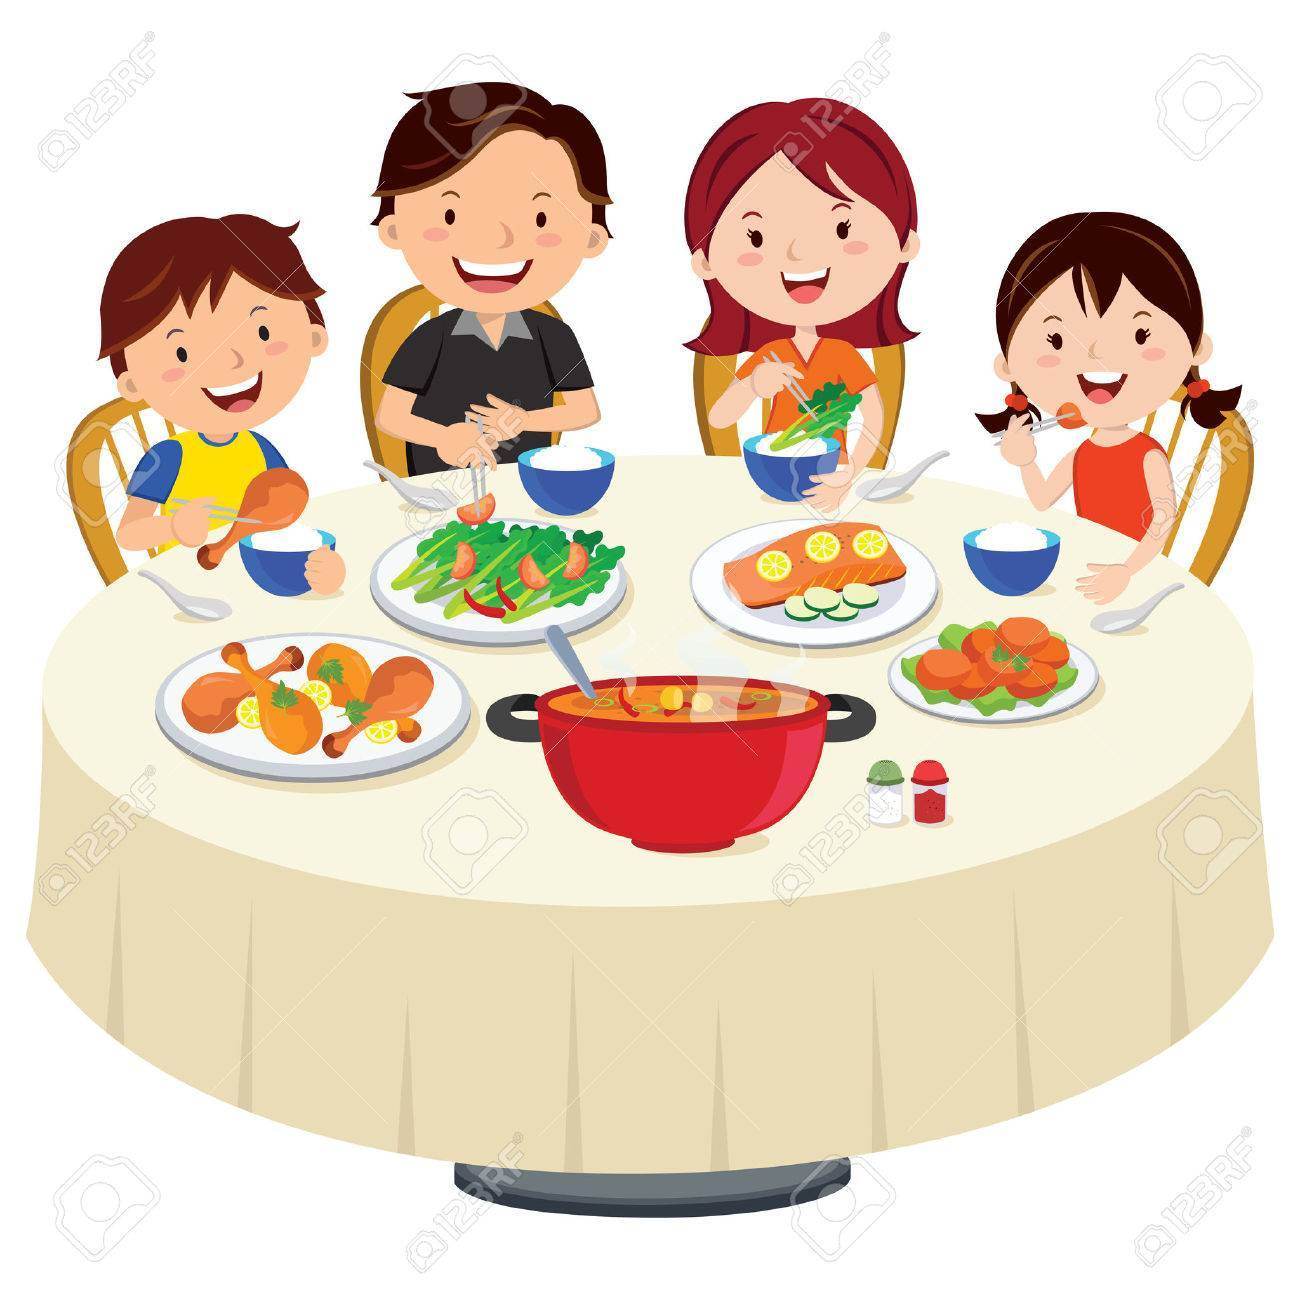 Boy eating dinner clipart royalty free download Boy eating dinner clipart 6 » Clipart Portal royalty free download